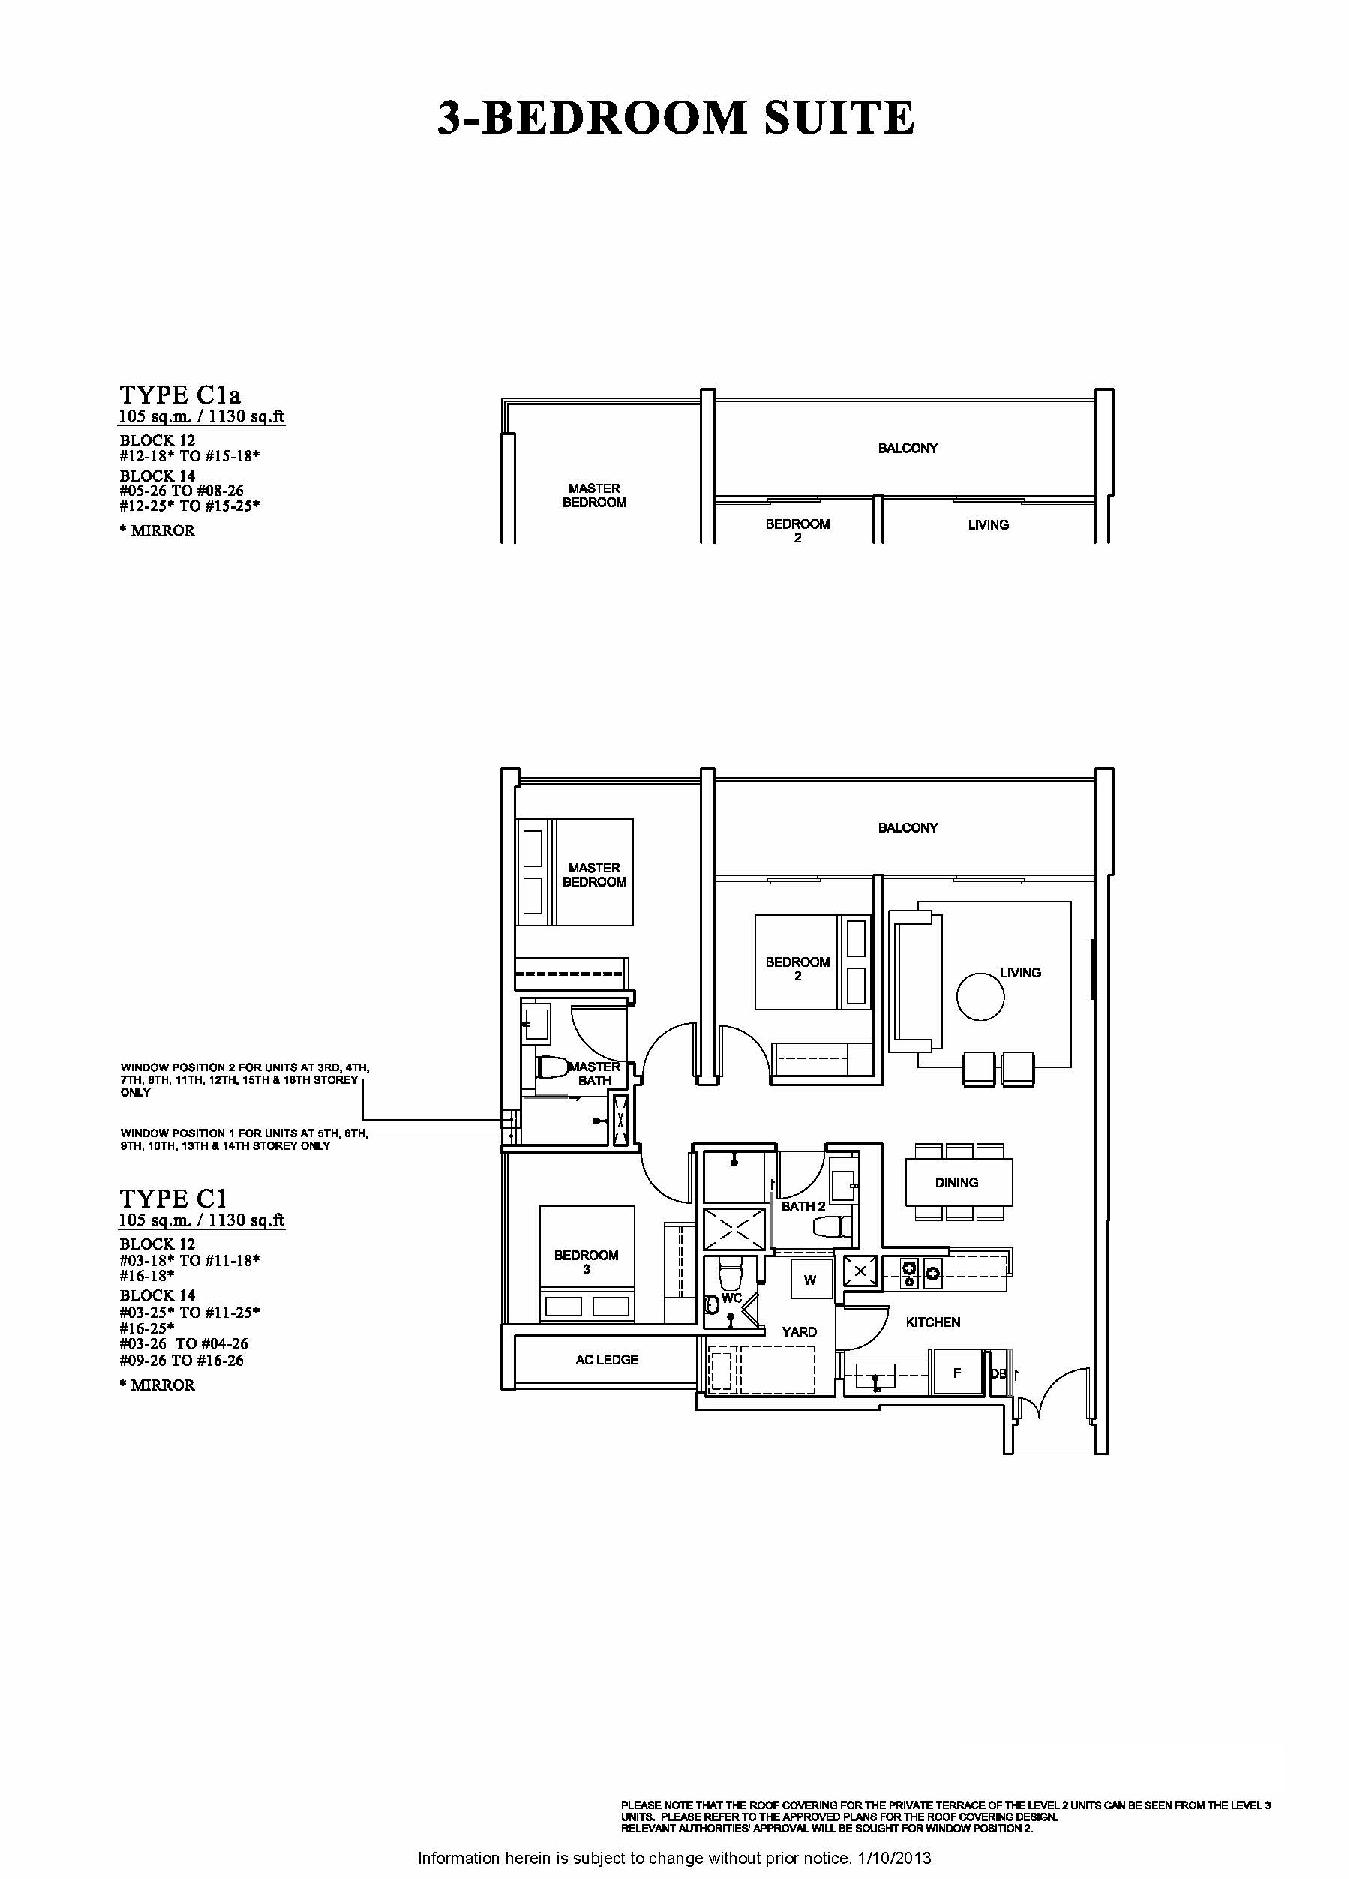 The Venue Residences 3 Bedroom Suite Floor Plan Type C1a and C1